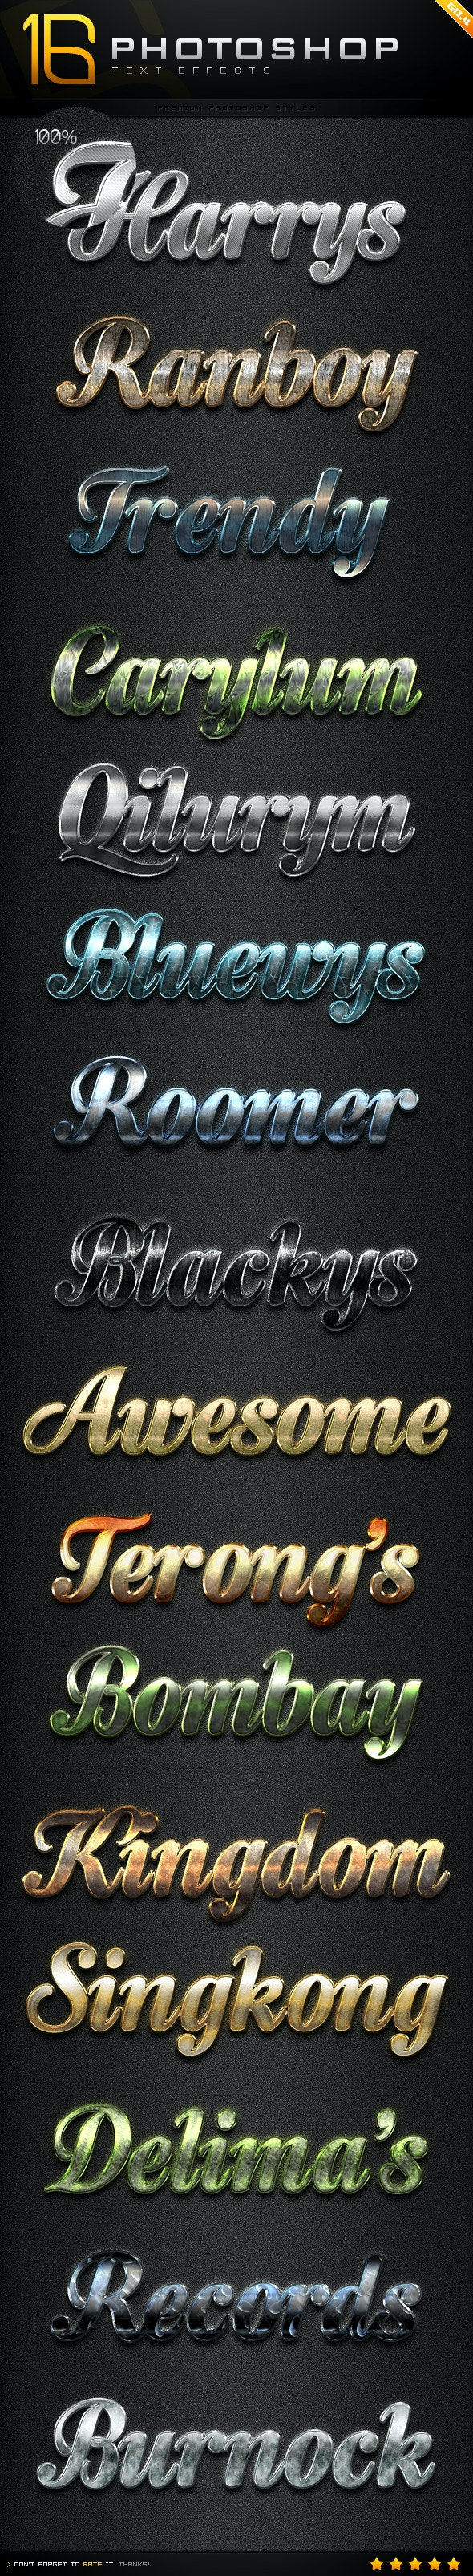 16 Photoshop Text Effect Styles GO.4 - Text Effects Styles